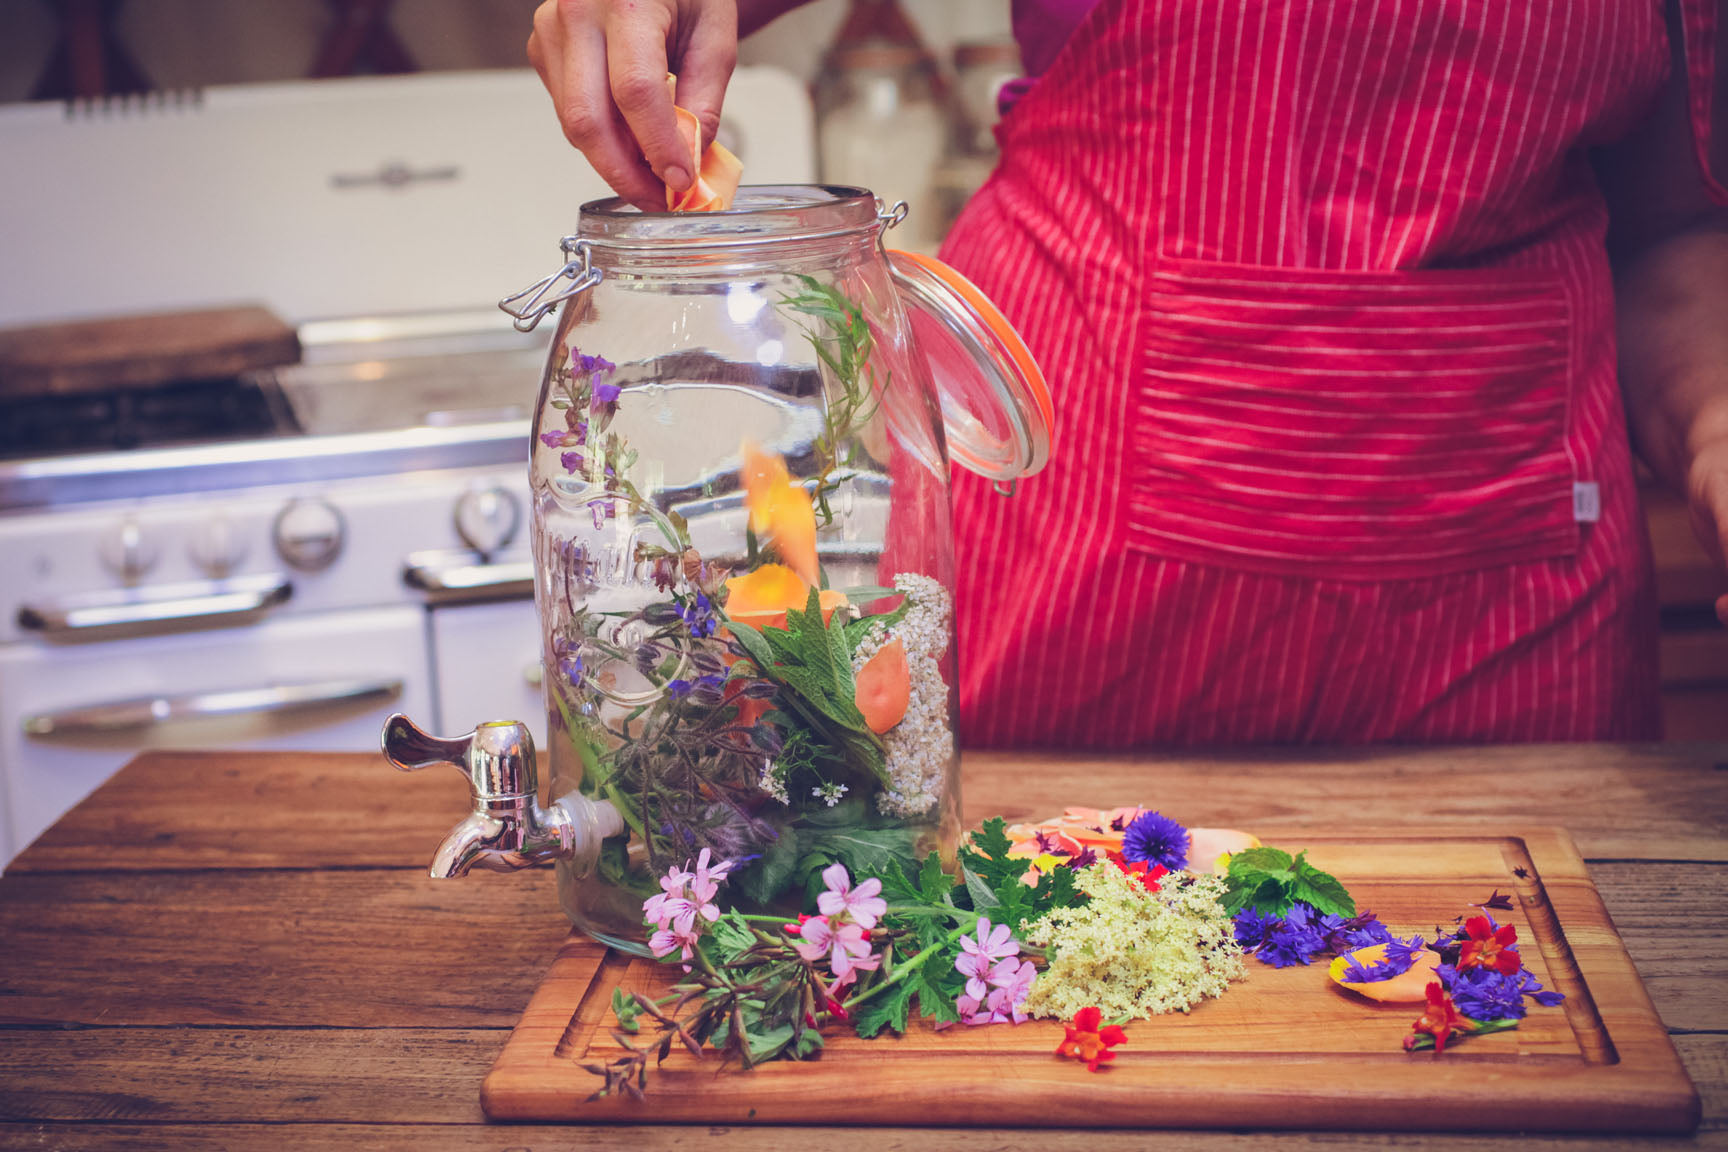 place herbs in jar